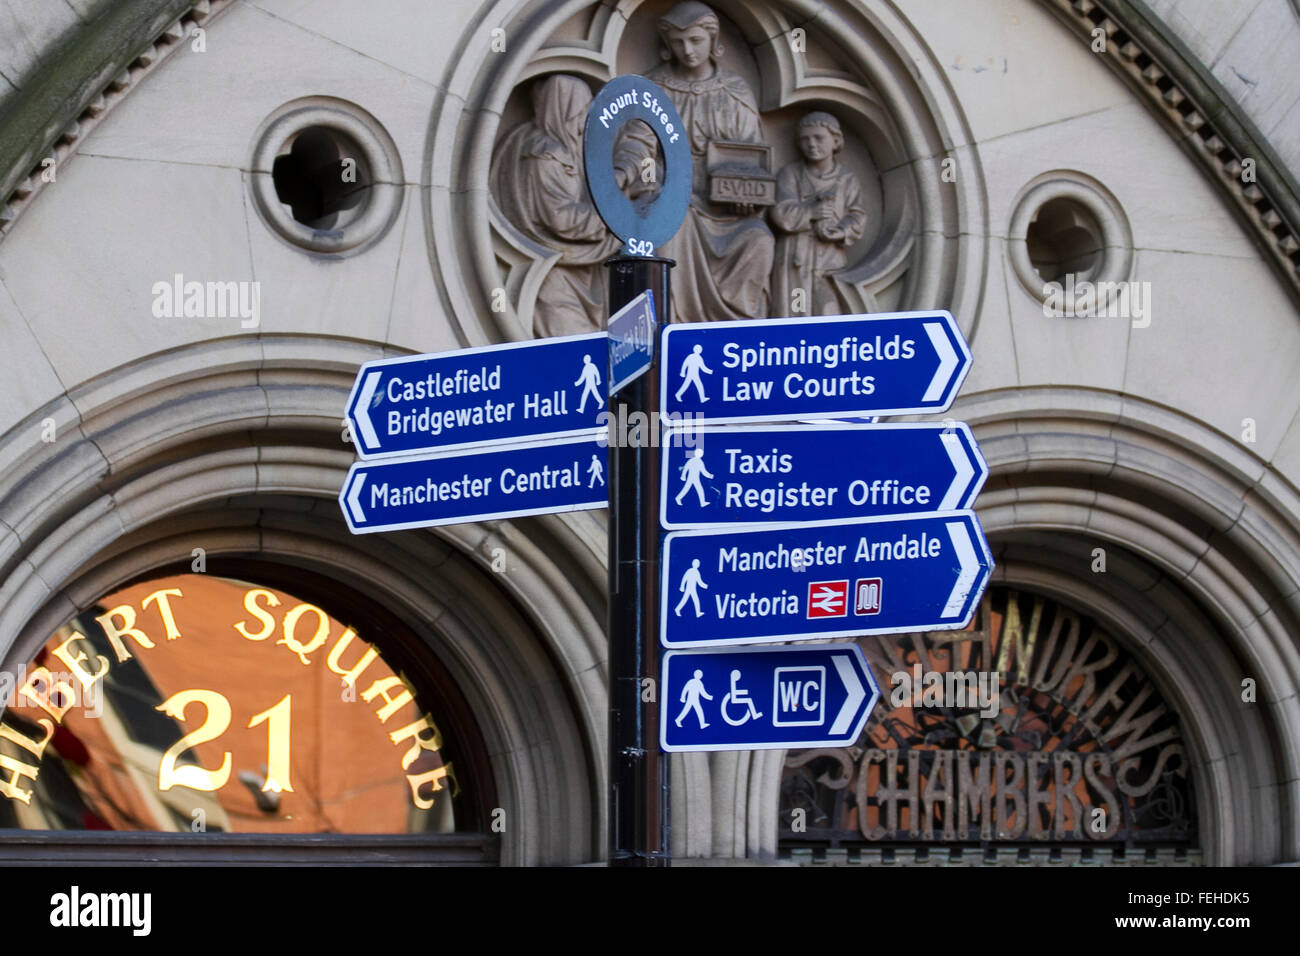 Albert Square Signs in Manchester, UK - Stock Image